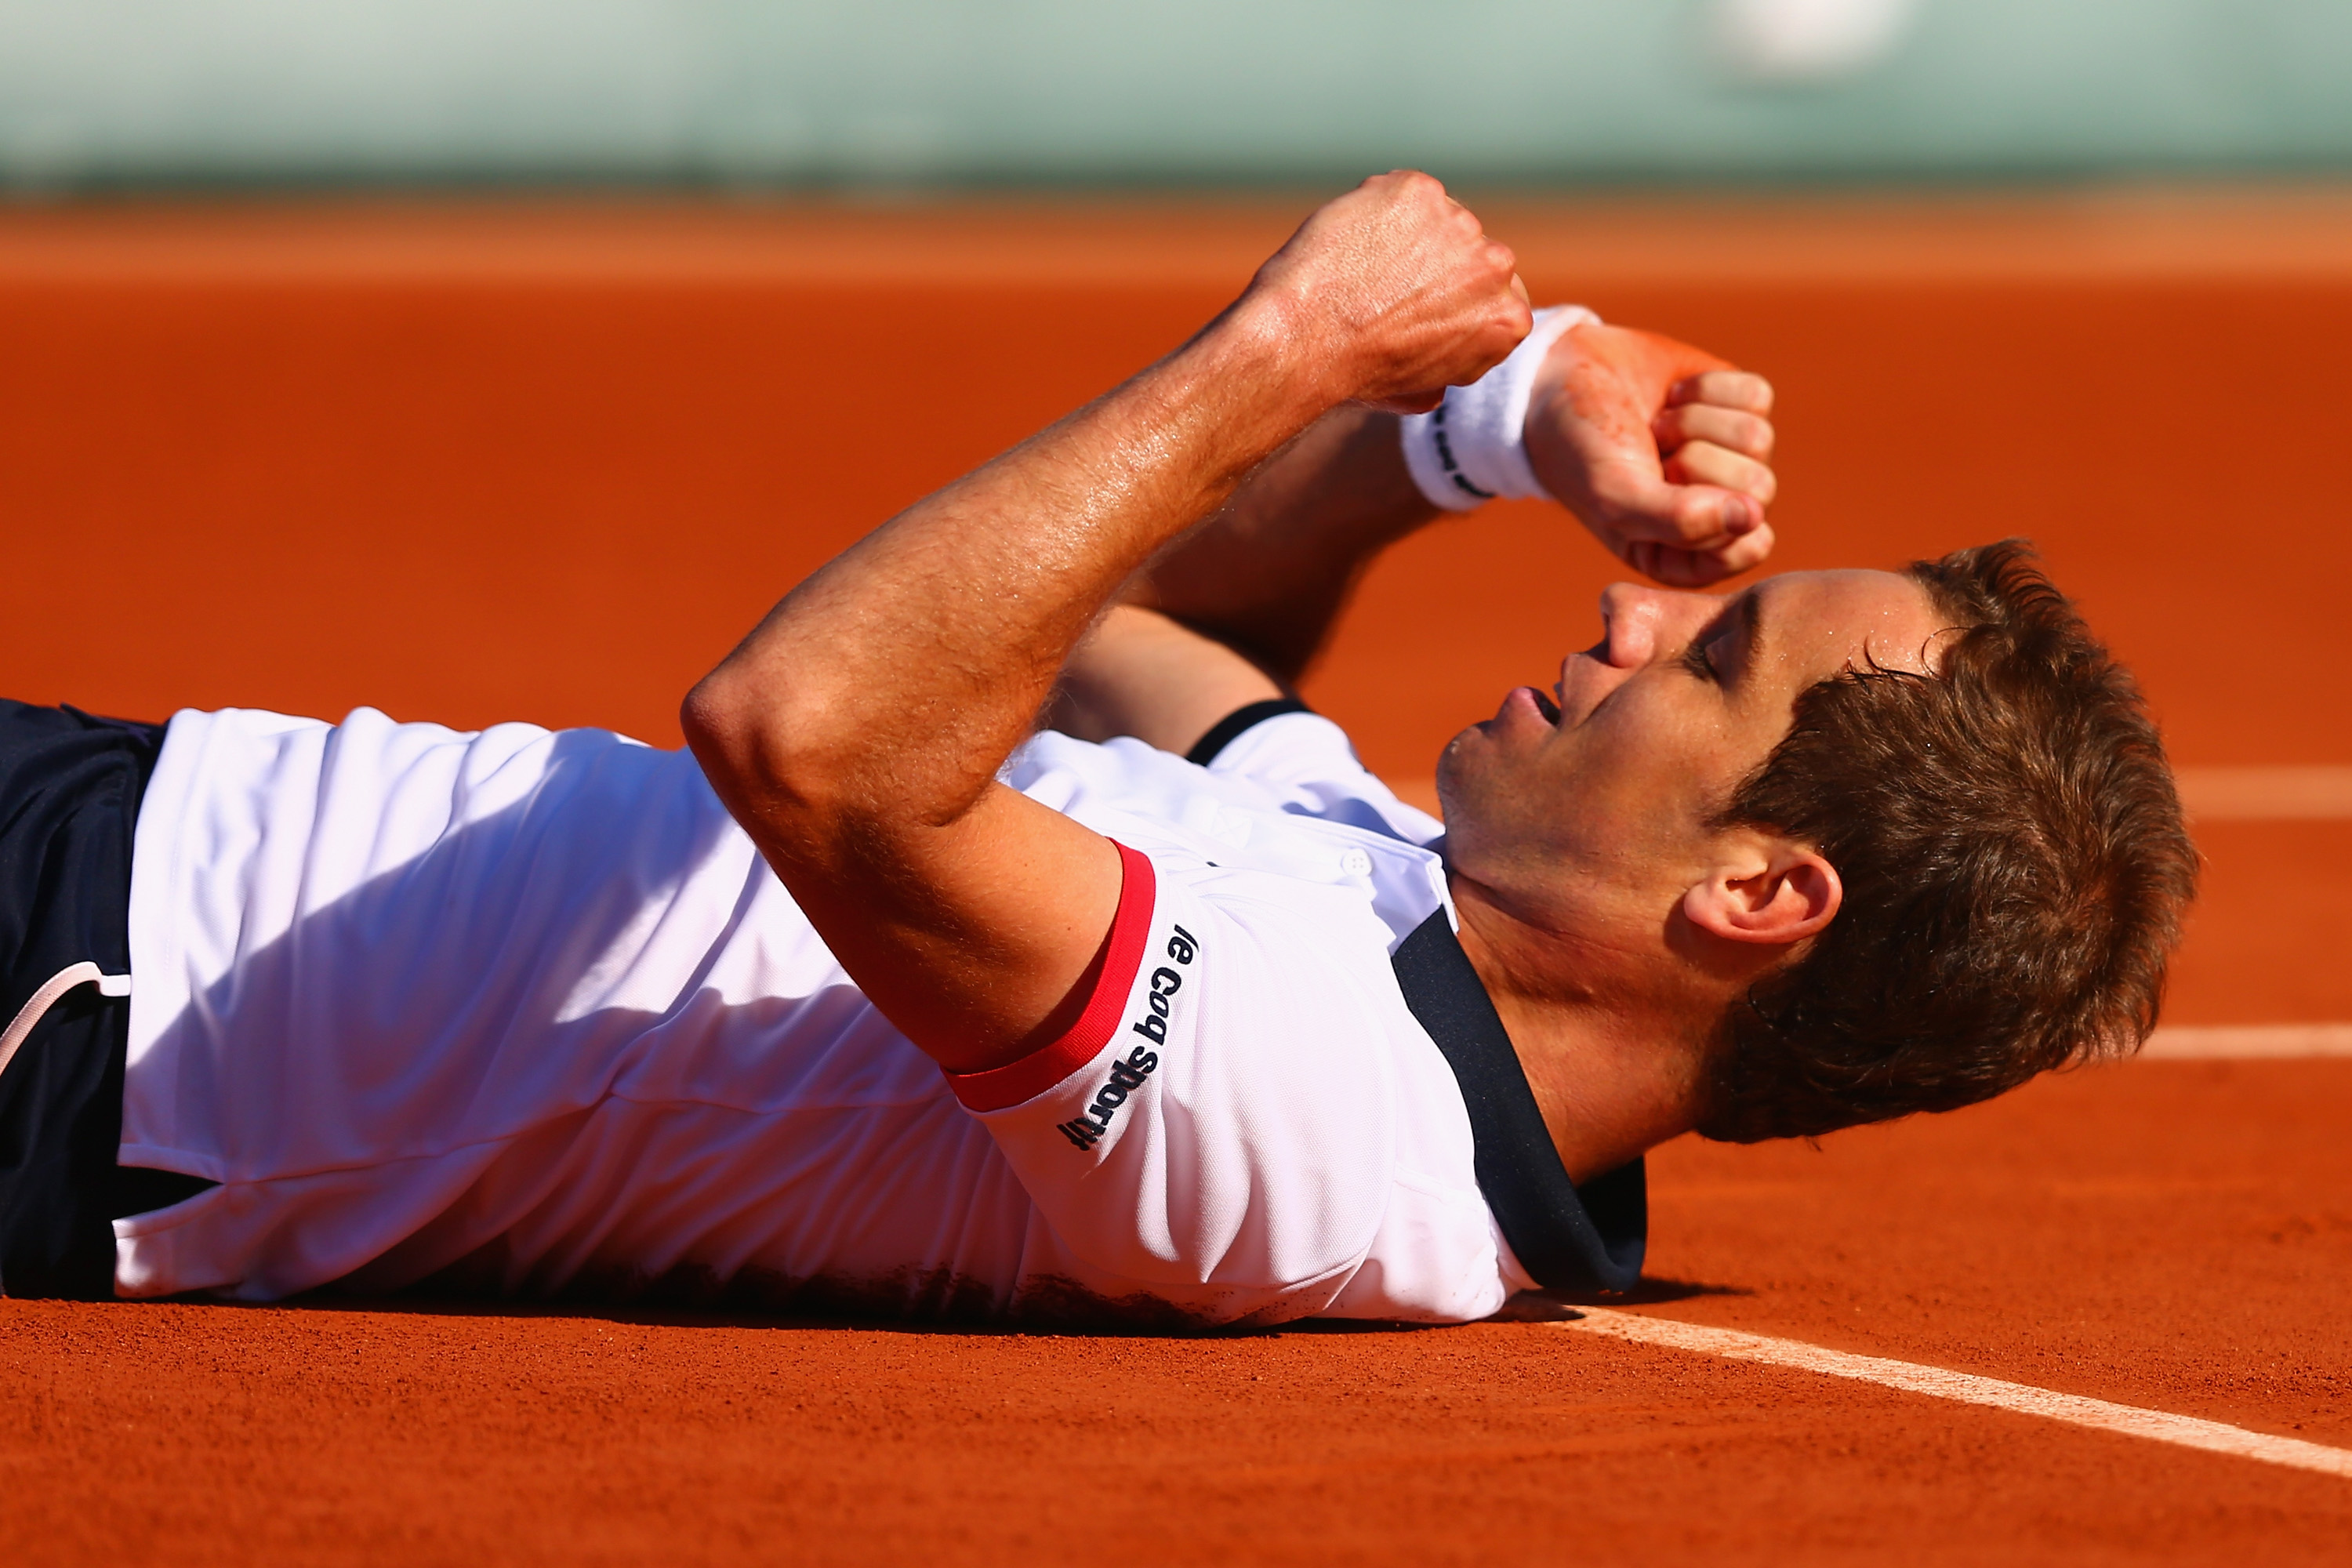 Gasquet d. Kevin Anderson 4–6, 7–6 (4), 7–5, 6–4.